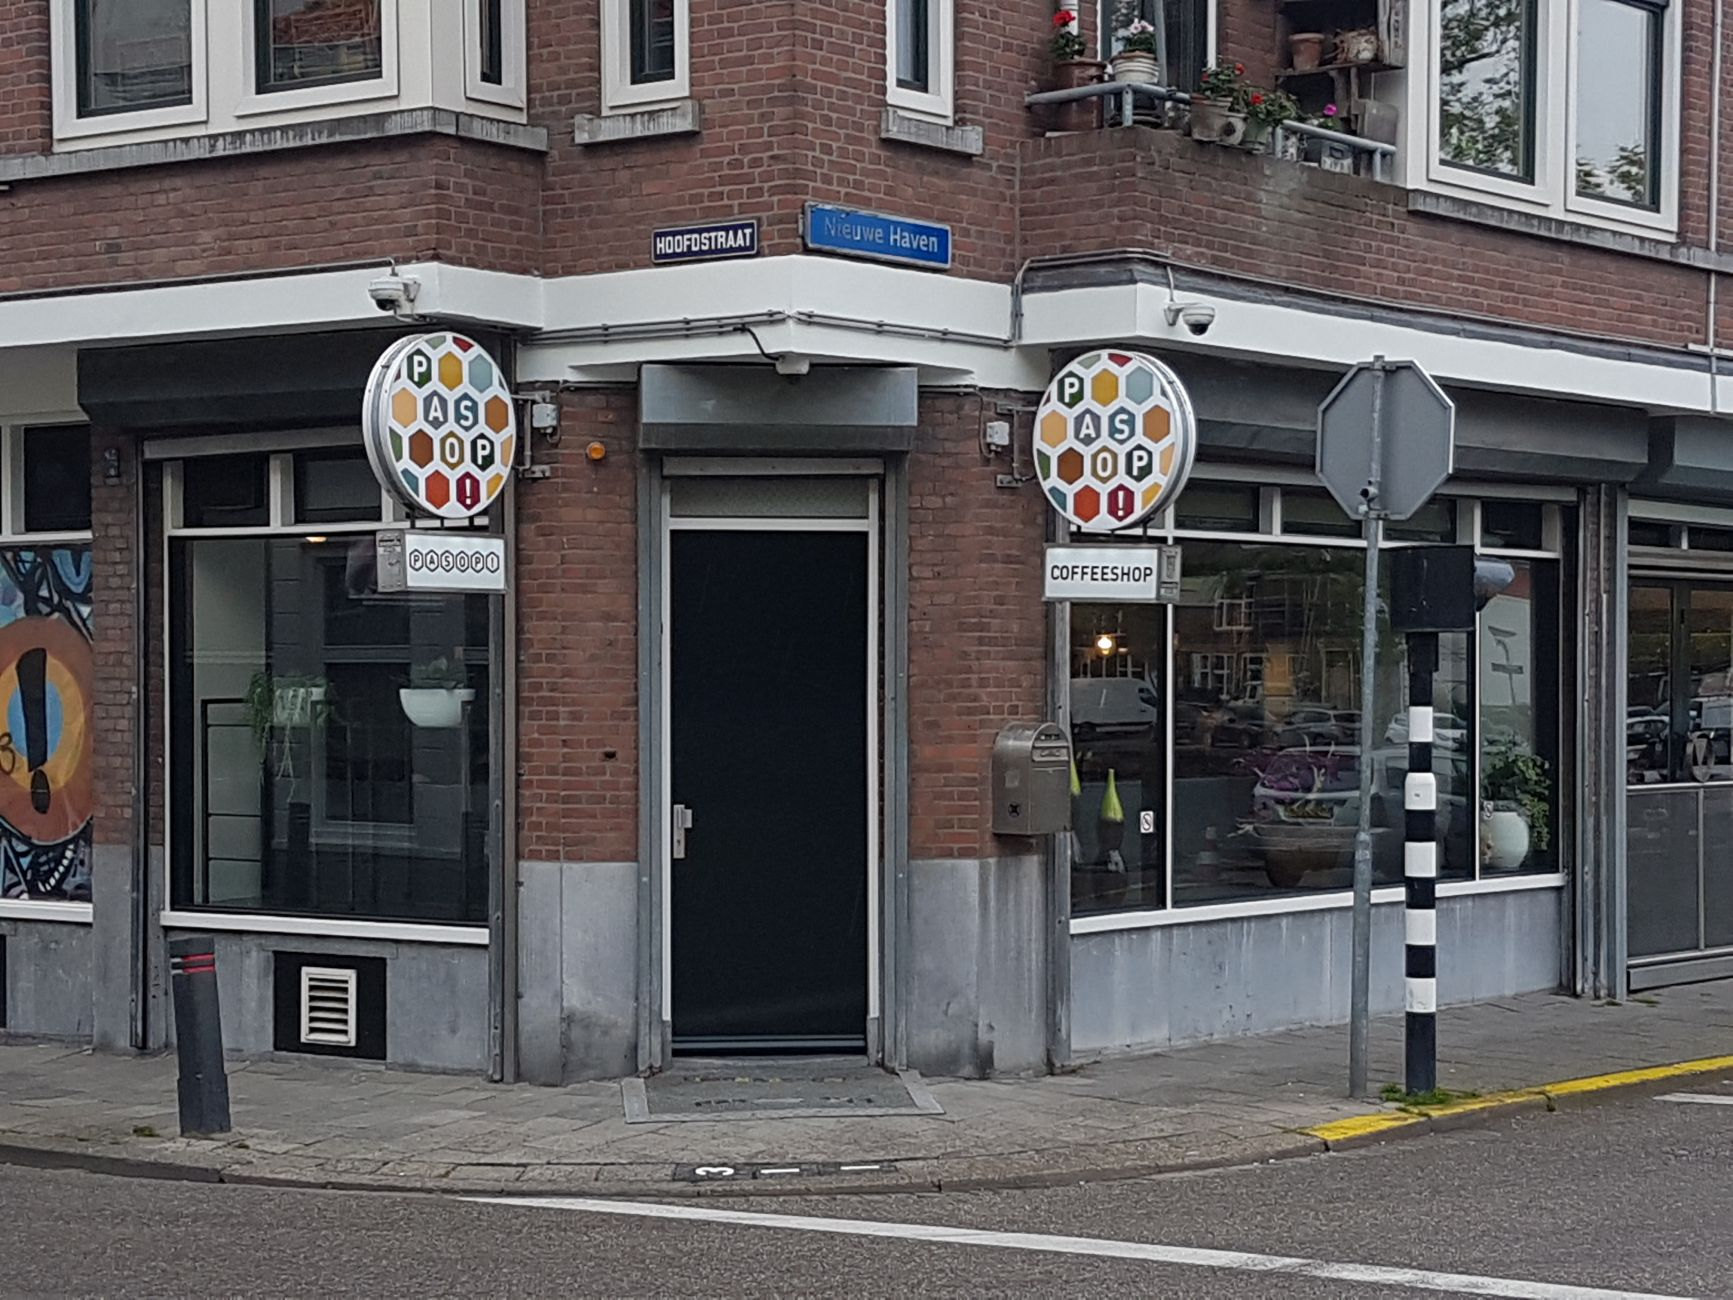 Procedure vierde coffeeshop overnieuw